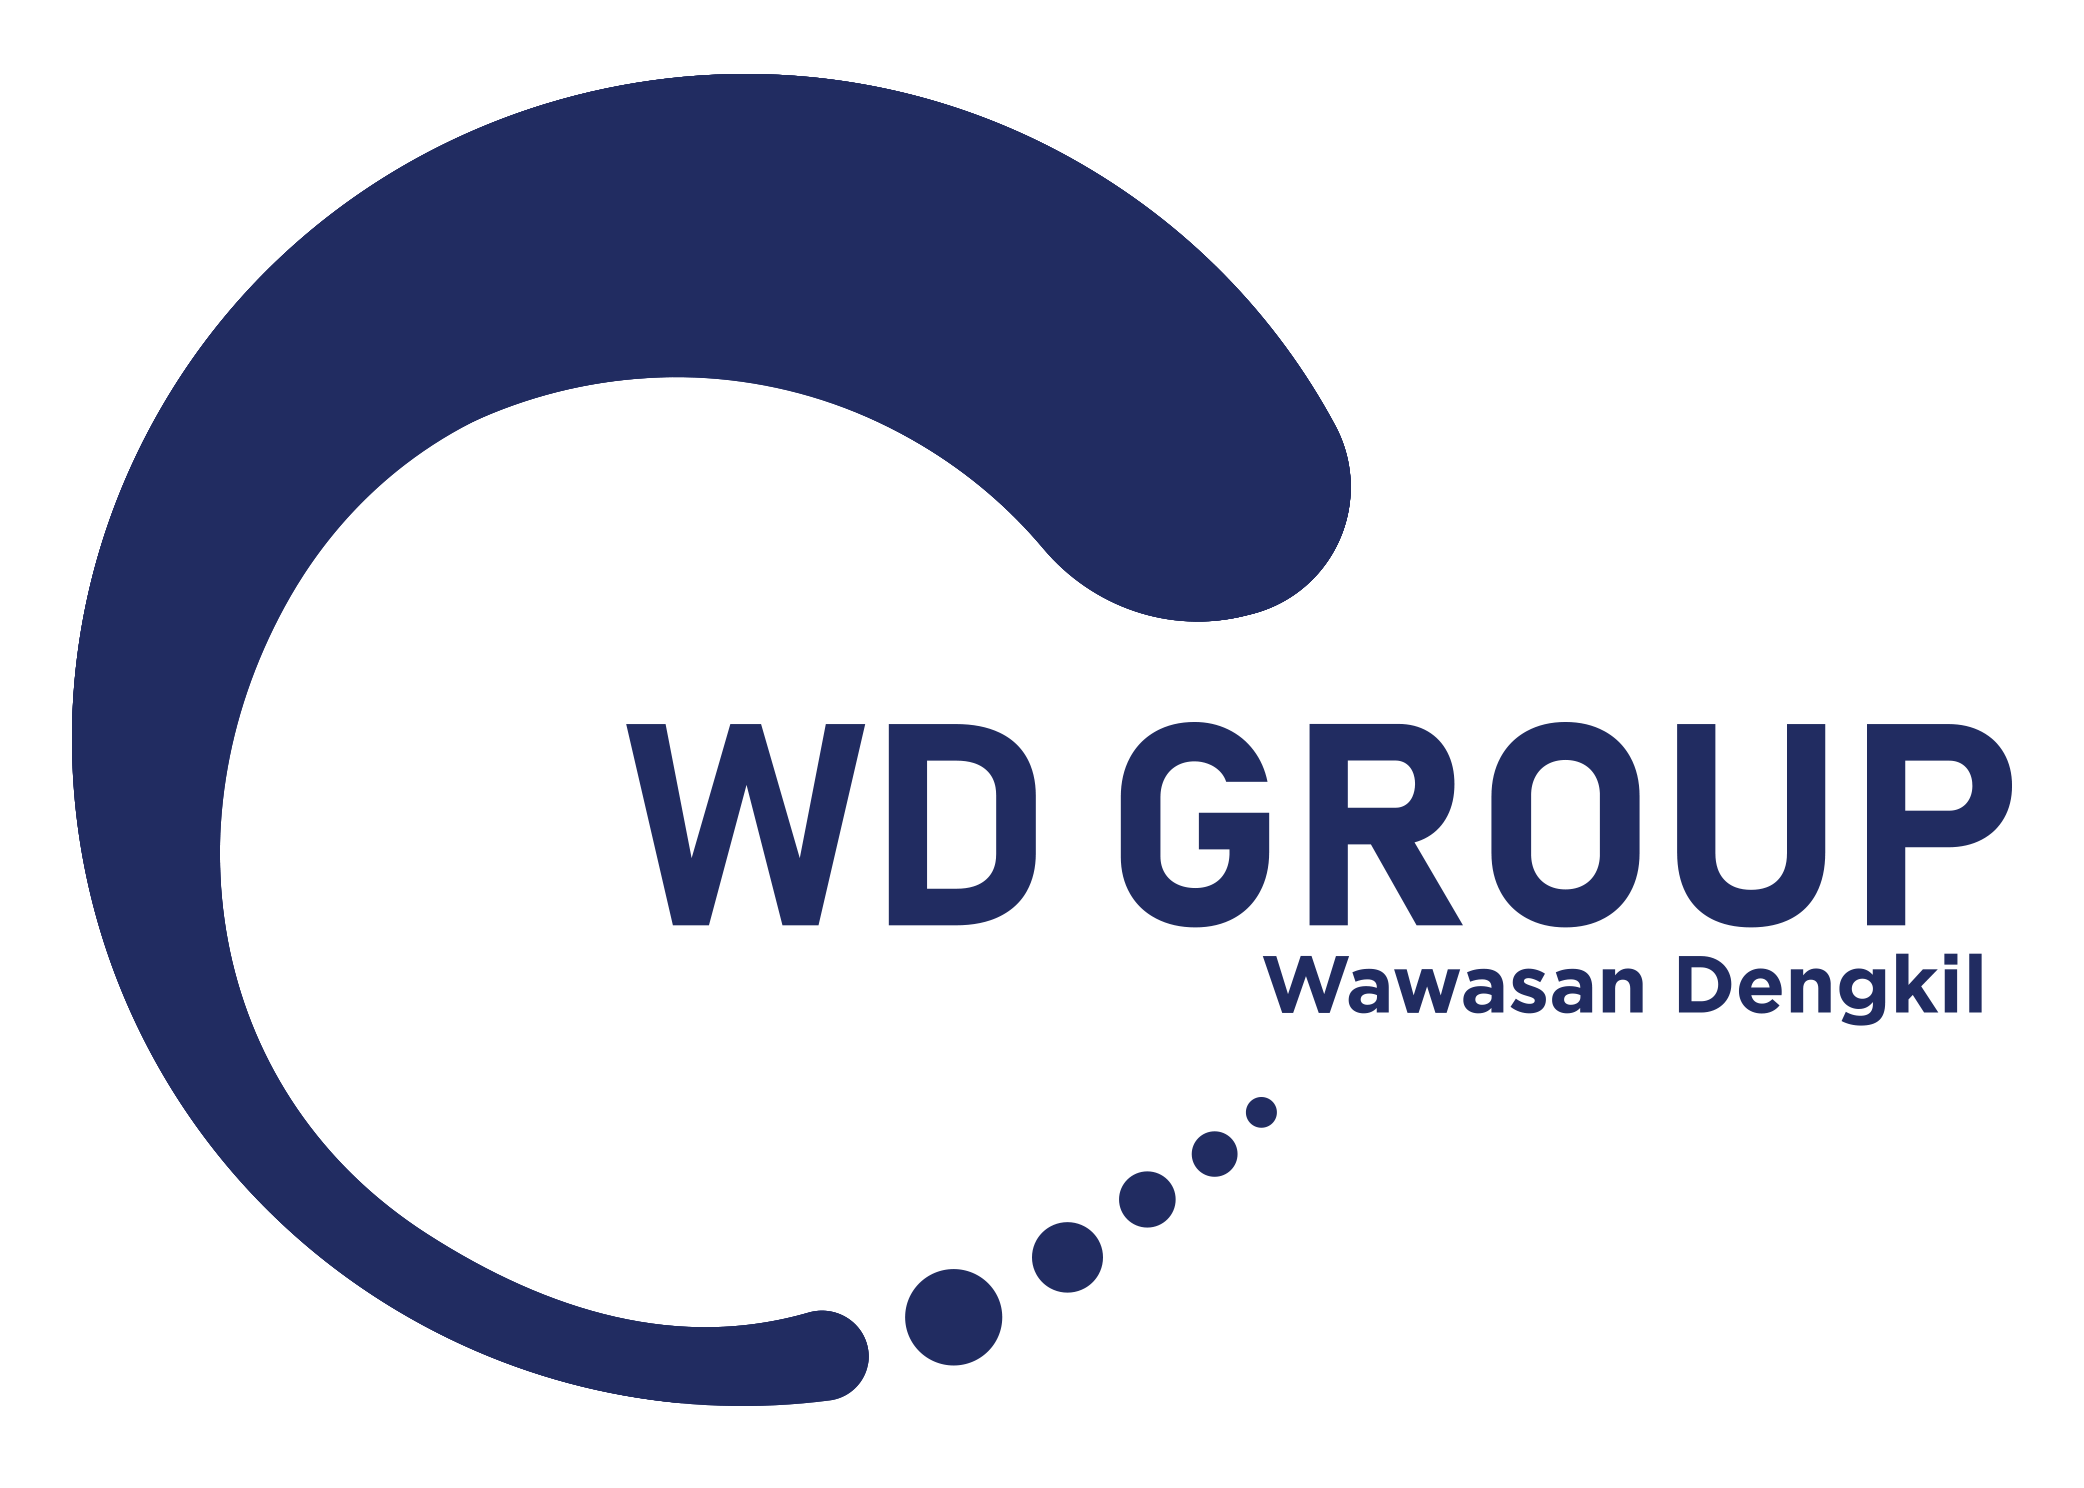 WD Group